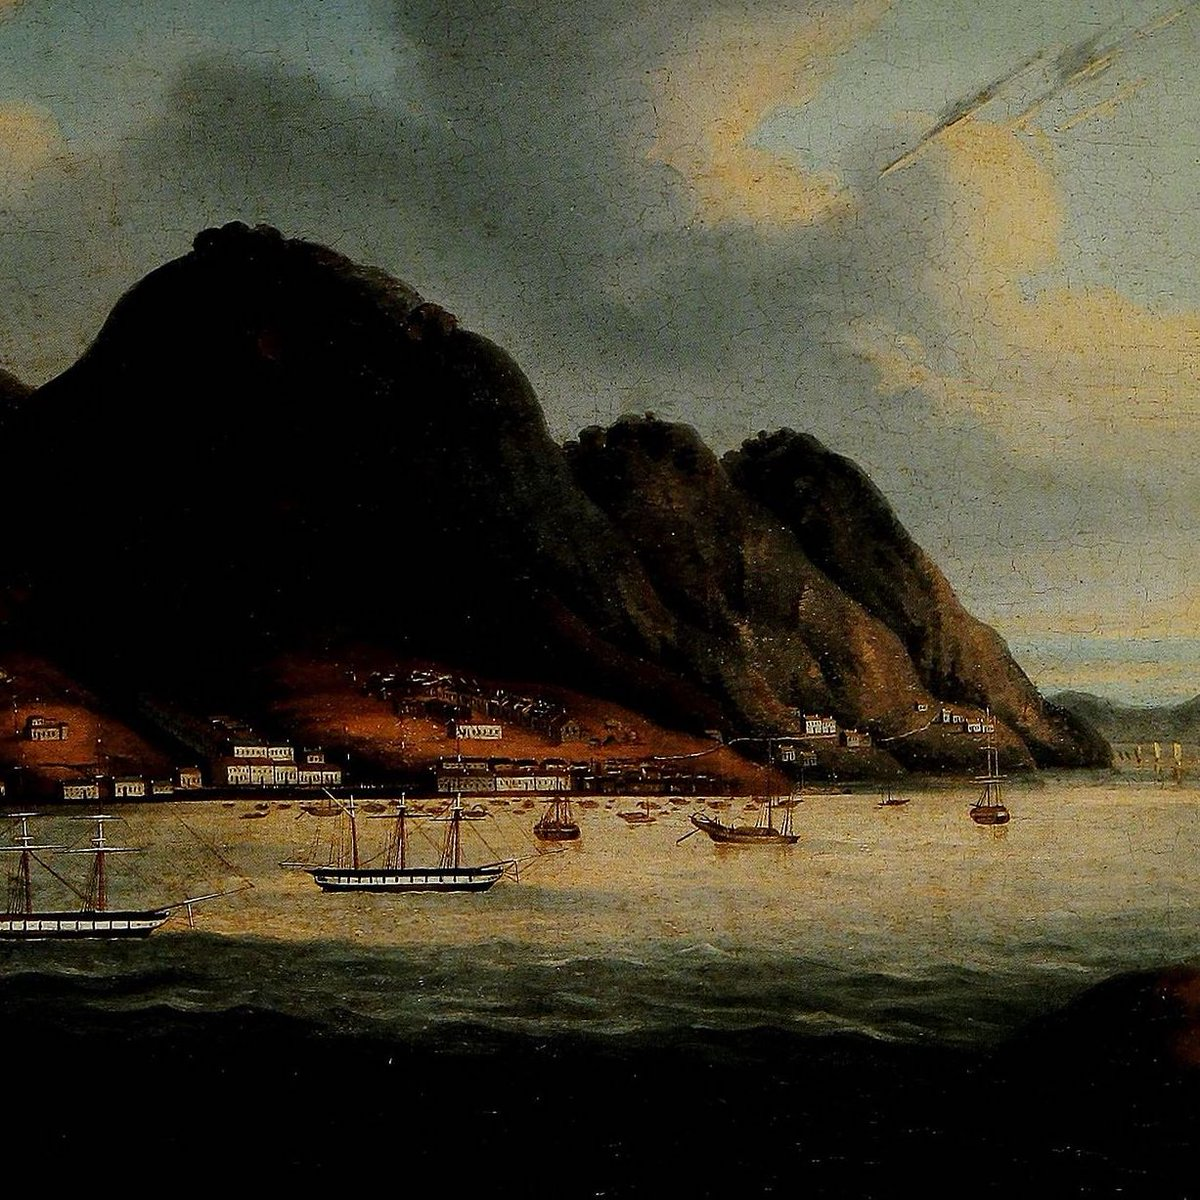 ON THIS DAY On January 20, 1841, the United Kingdom first took possession of Hong Kong Island from the Qing Dynasty. Hong Kong would remain under British control until 1997 when the city was handed back to China. #OTD